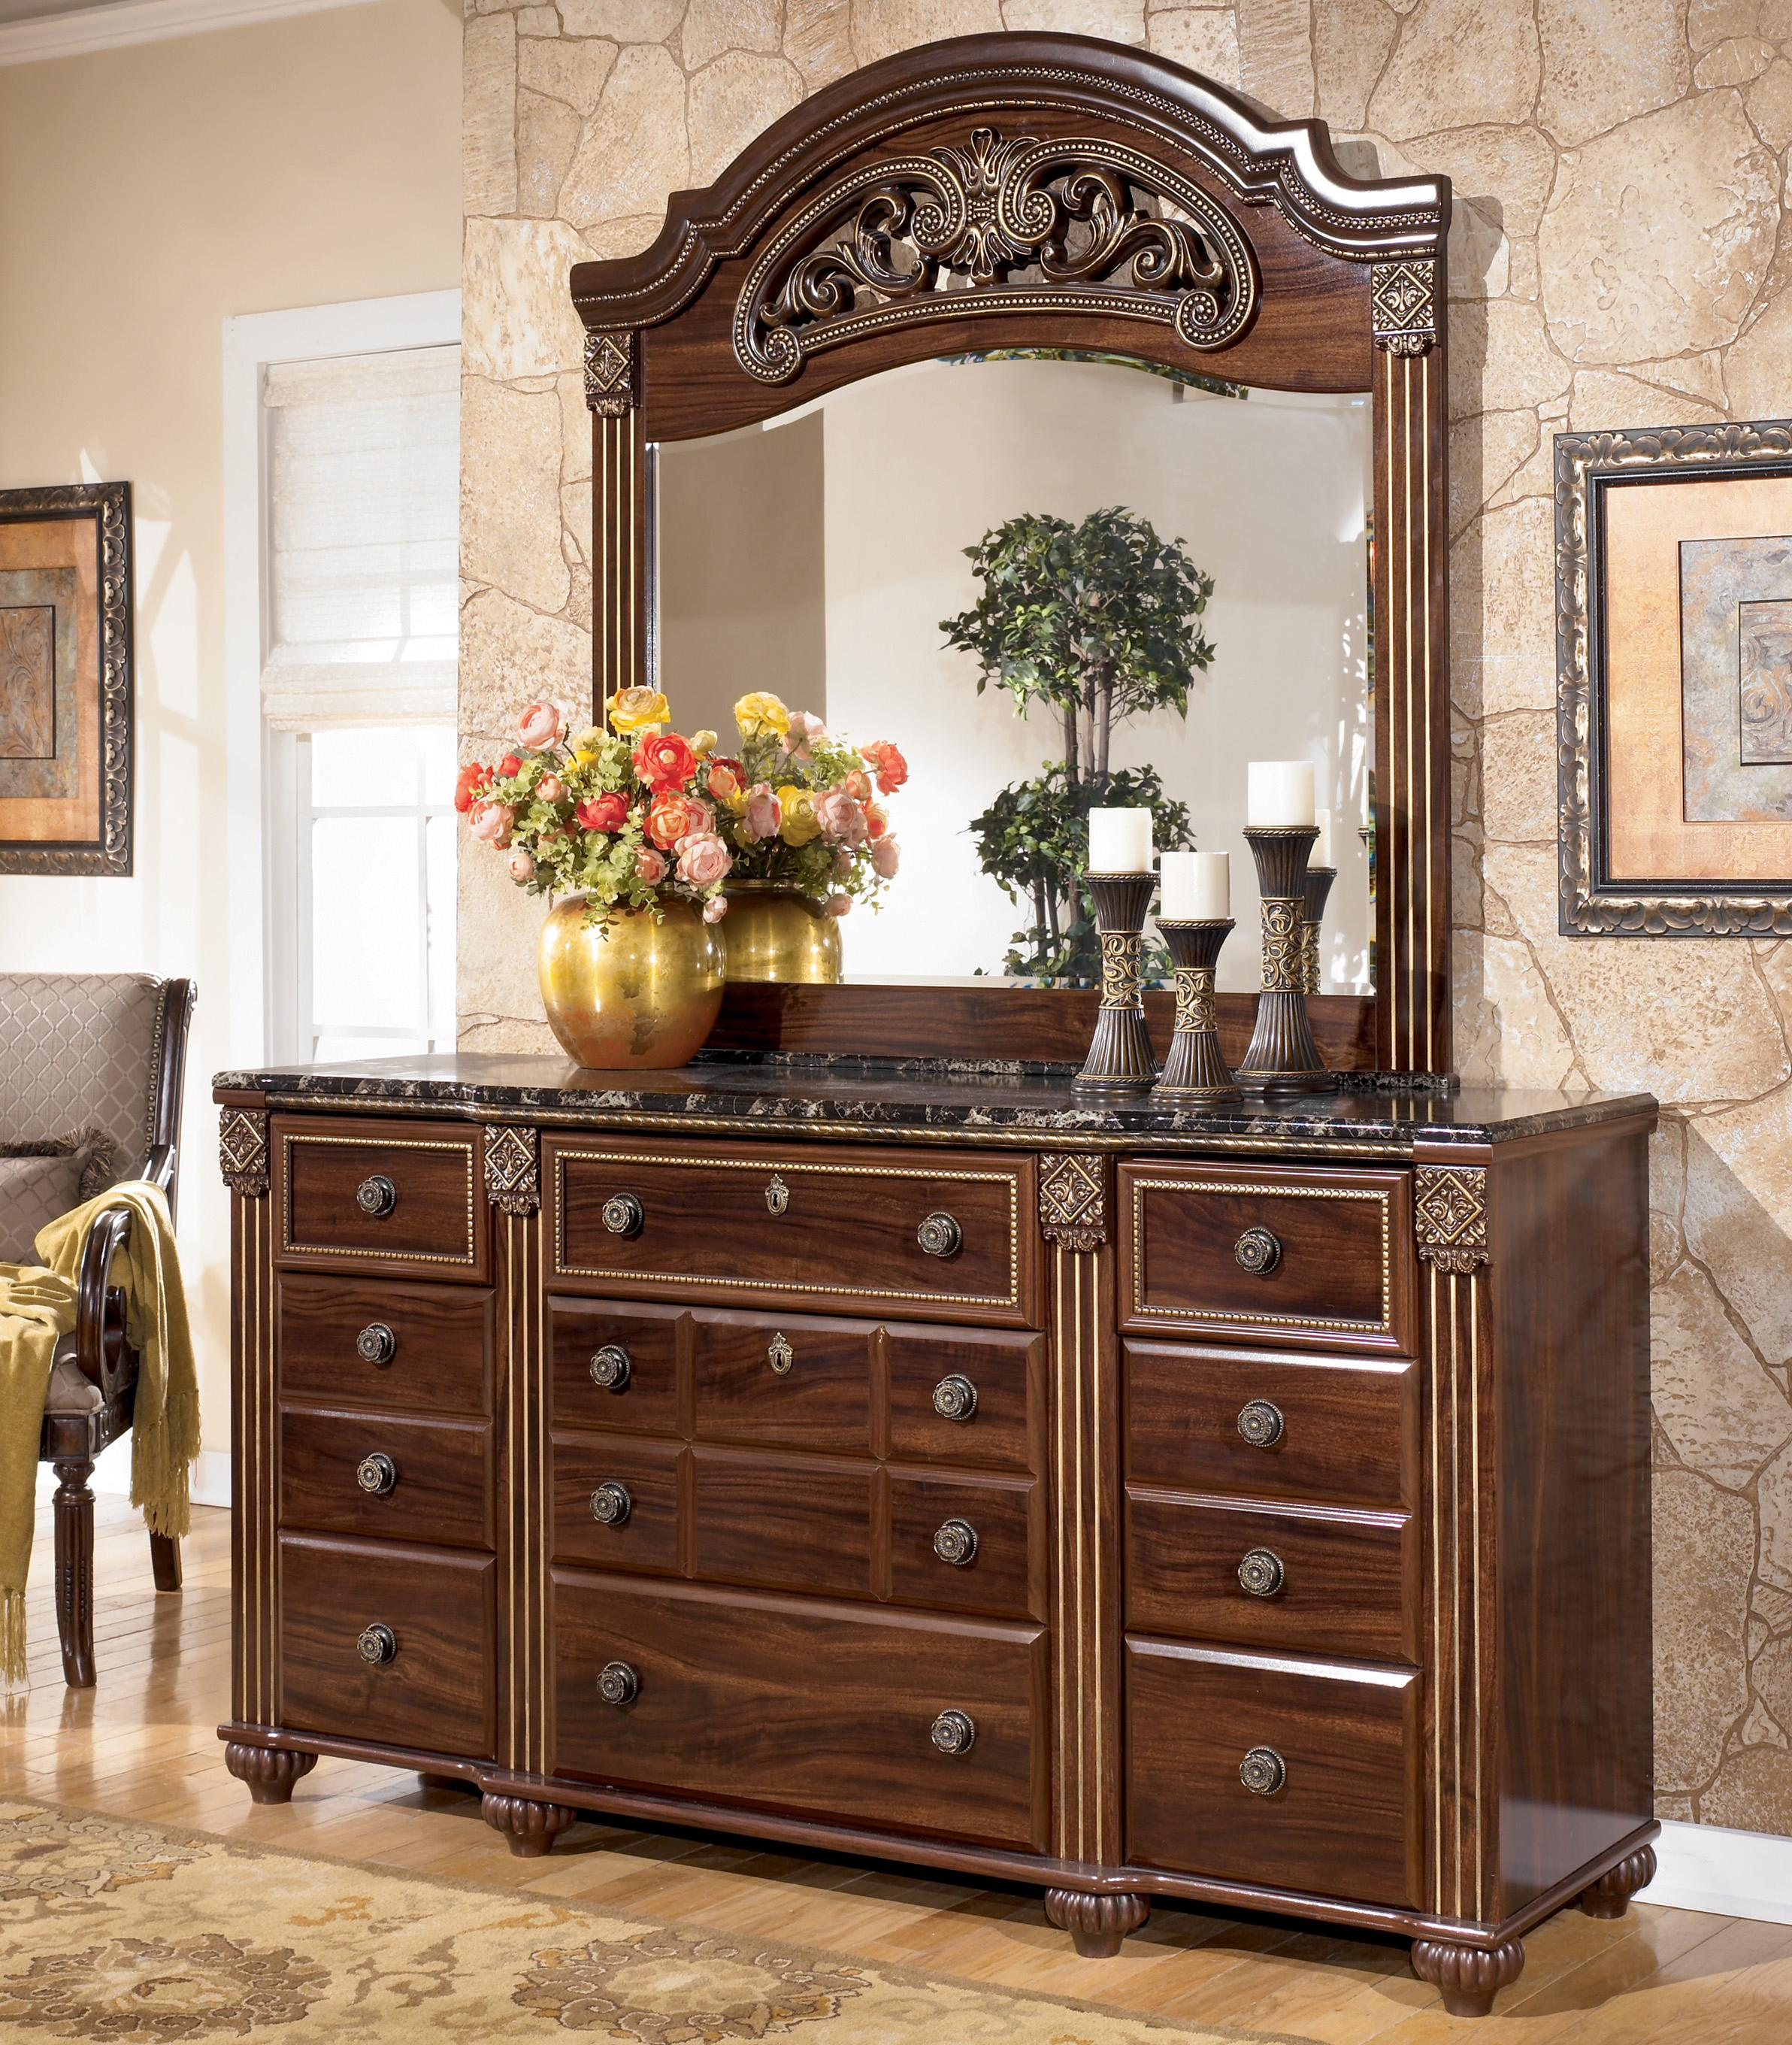 Signature Design by Ashley Gabriela 9 Drawer Dresser with Mirror - Item Number: B347-31+36